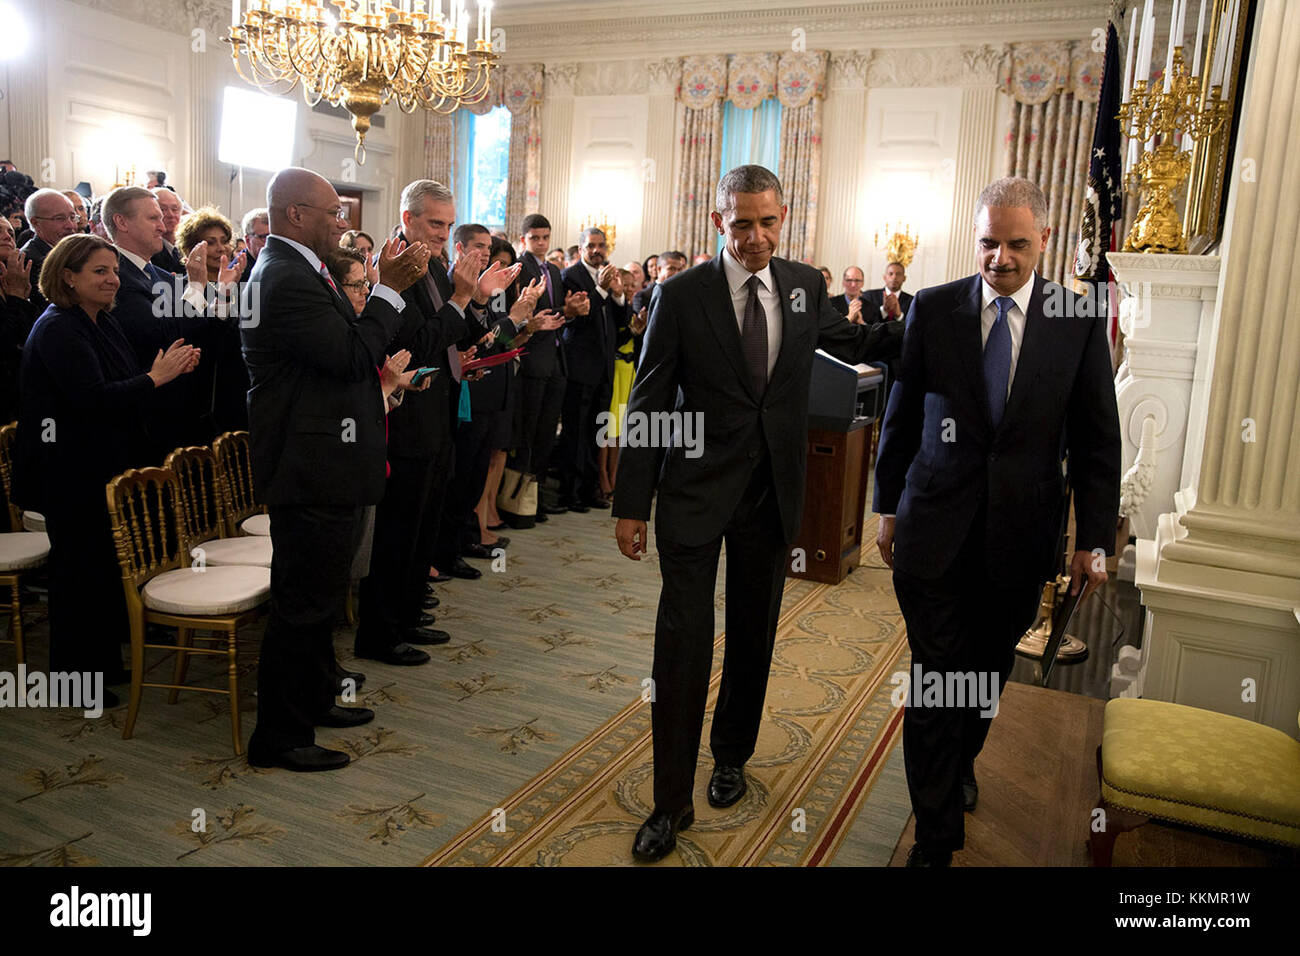 President Barack Obama and Attorney General Eric H. Holder, Jr., depart the State Dining Room of the White House - Stock Image